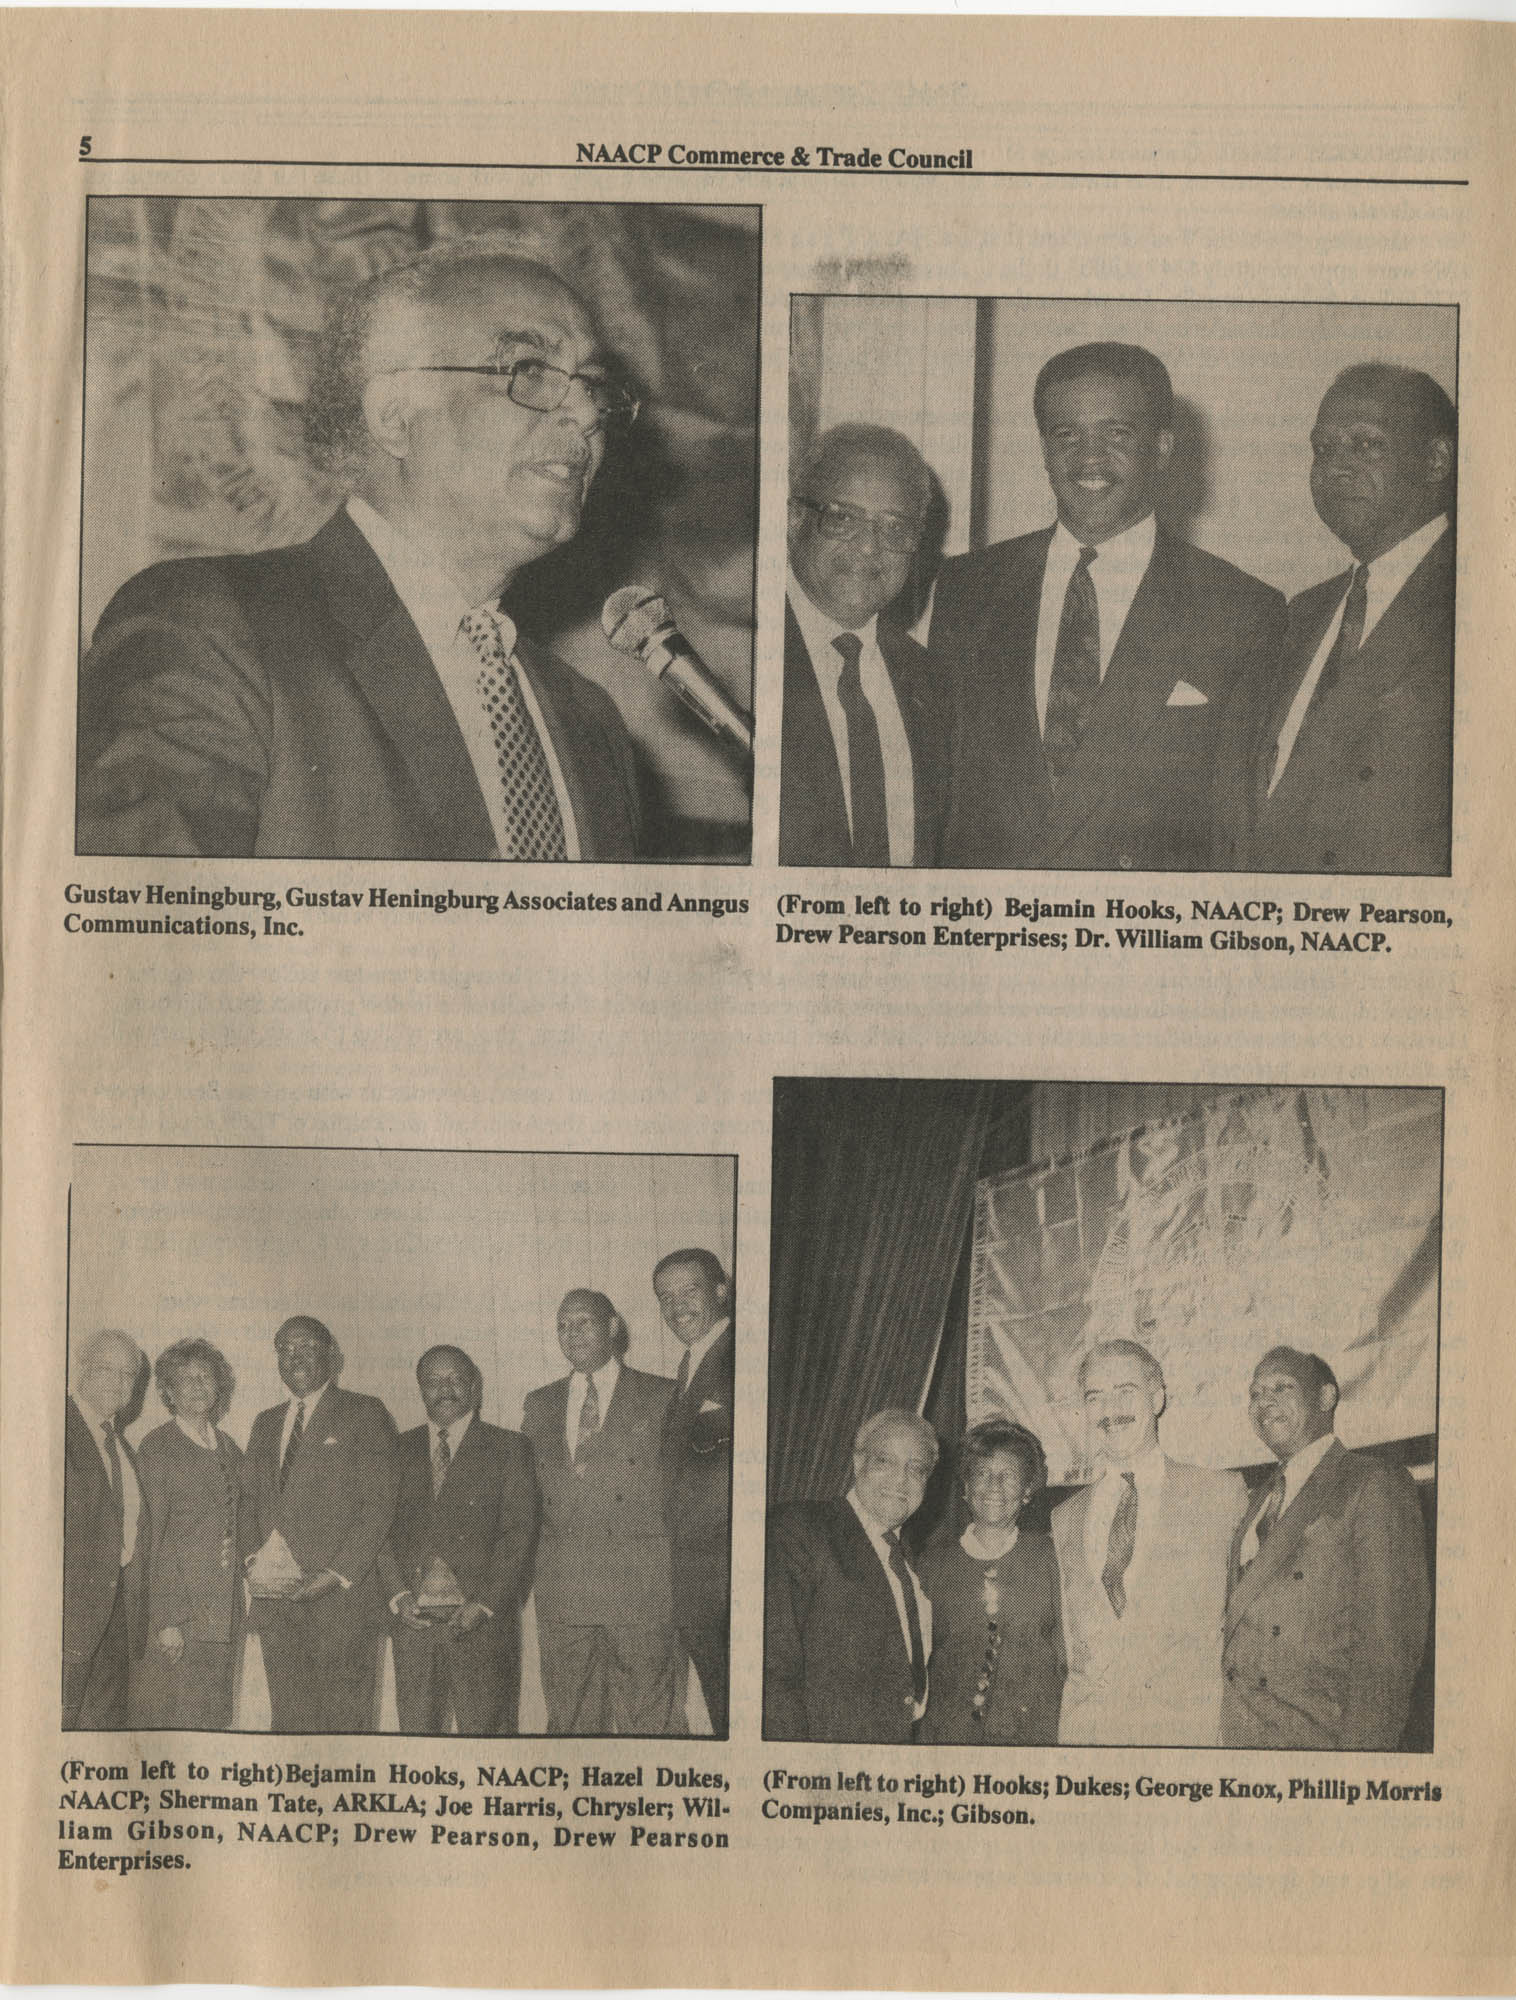 NAACP Commerce and Trade Council, July/September 1991, Vol. 1, Issue 1, Page 5